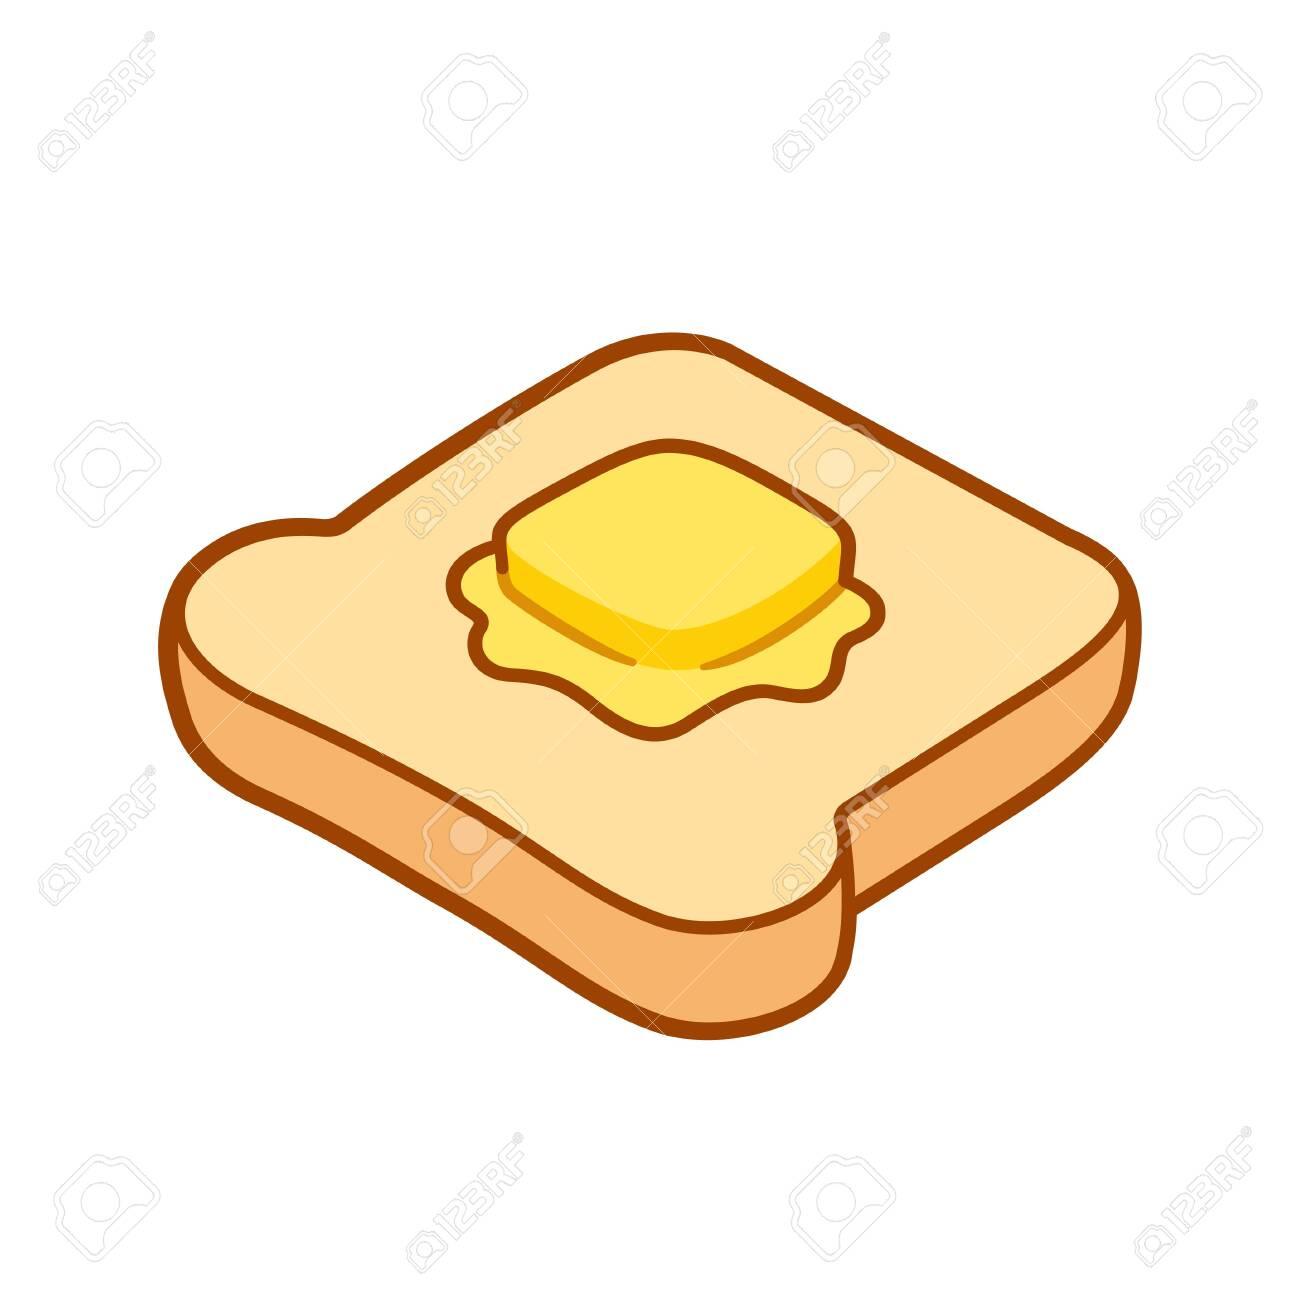 toast with butter cartoon drawing. traditional breakfast, buttered..  royalty free cliparts, vectors, and stock illustration. image 141194766.  123rf